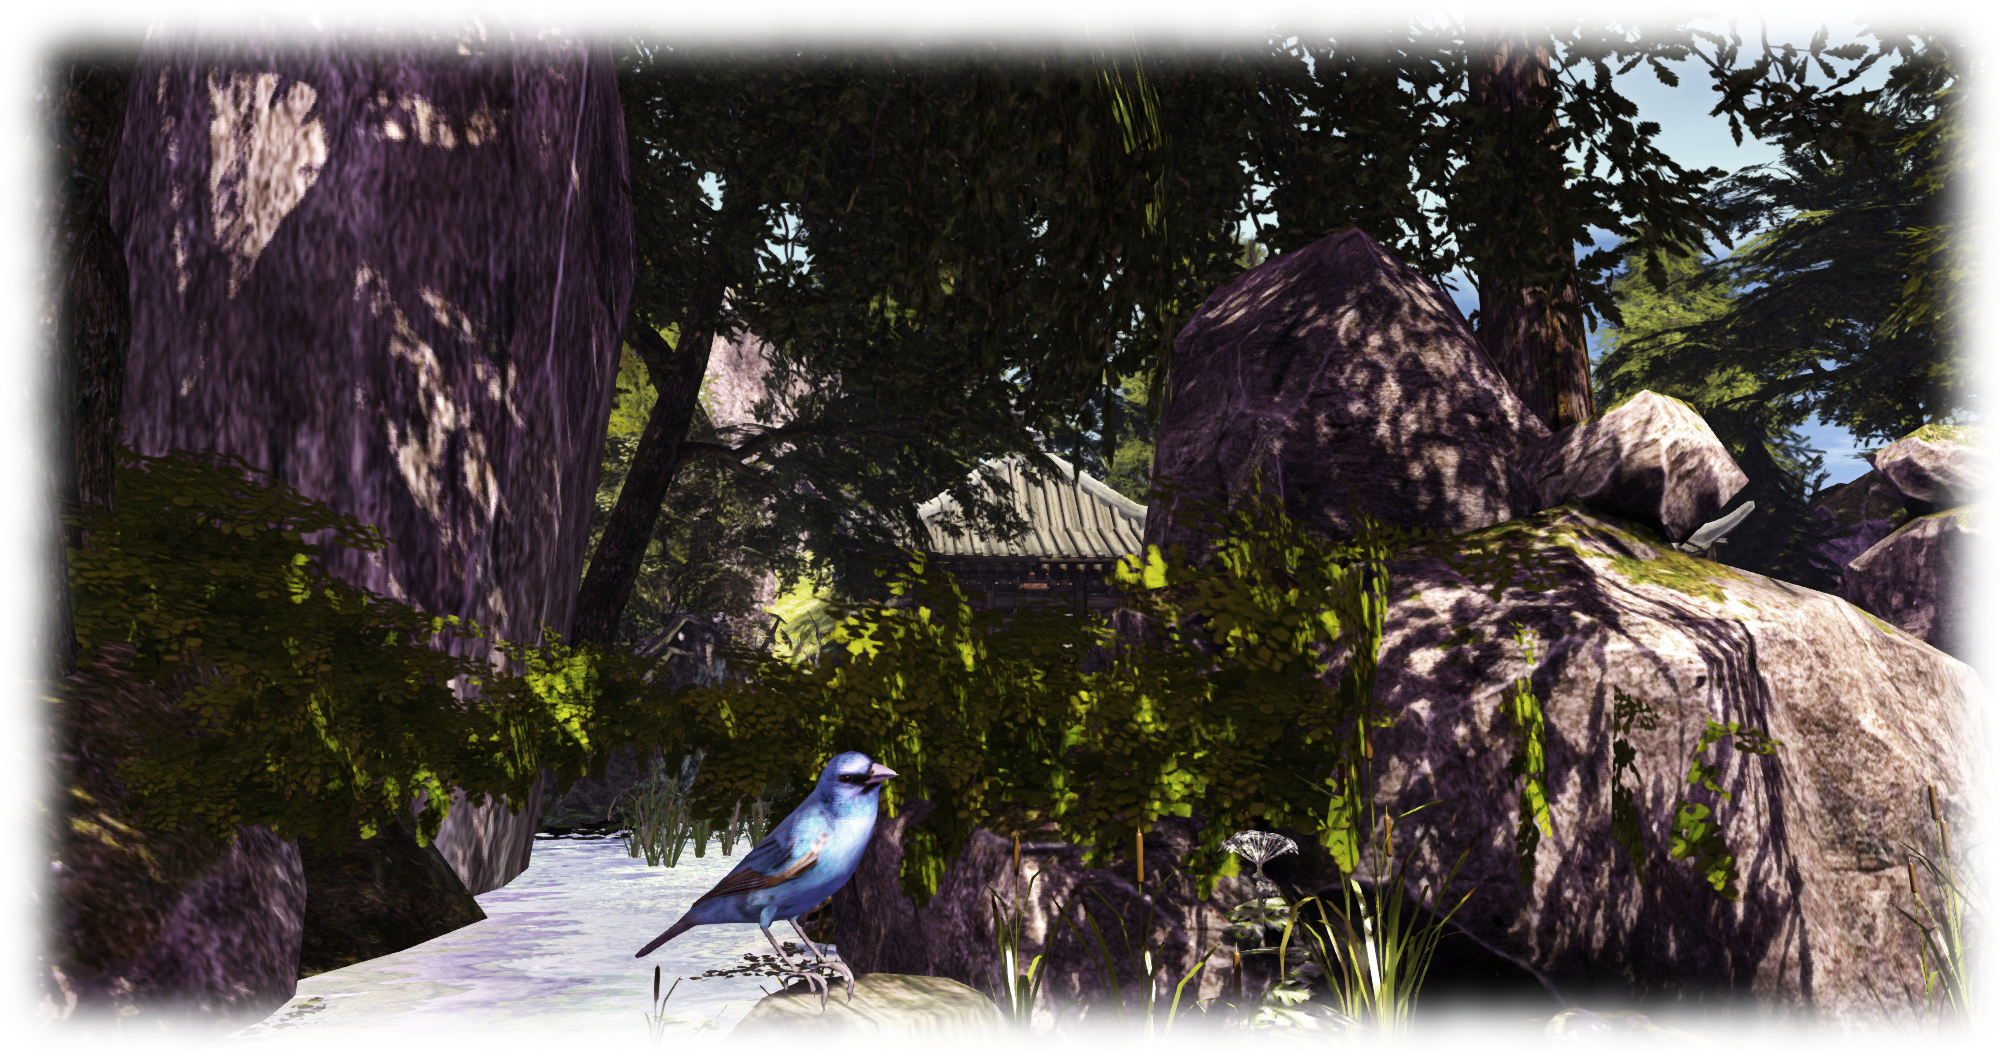 Armenelos, Calas Galadhon; Inara Pey, March 2015, on Flickr